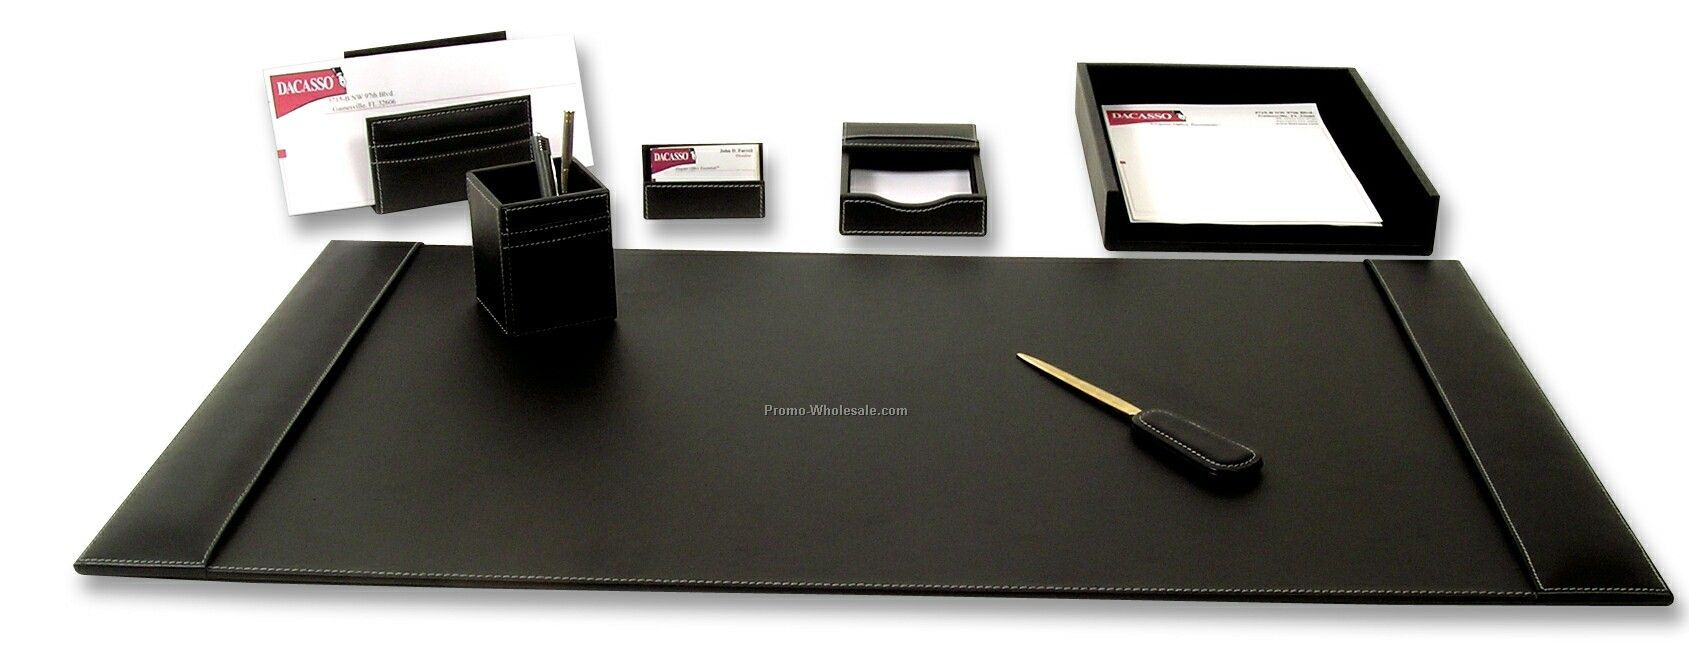 7-piece Rustic Leather Desk Set - Black